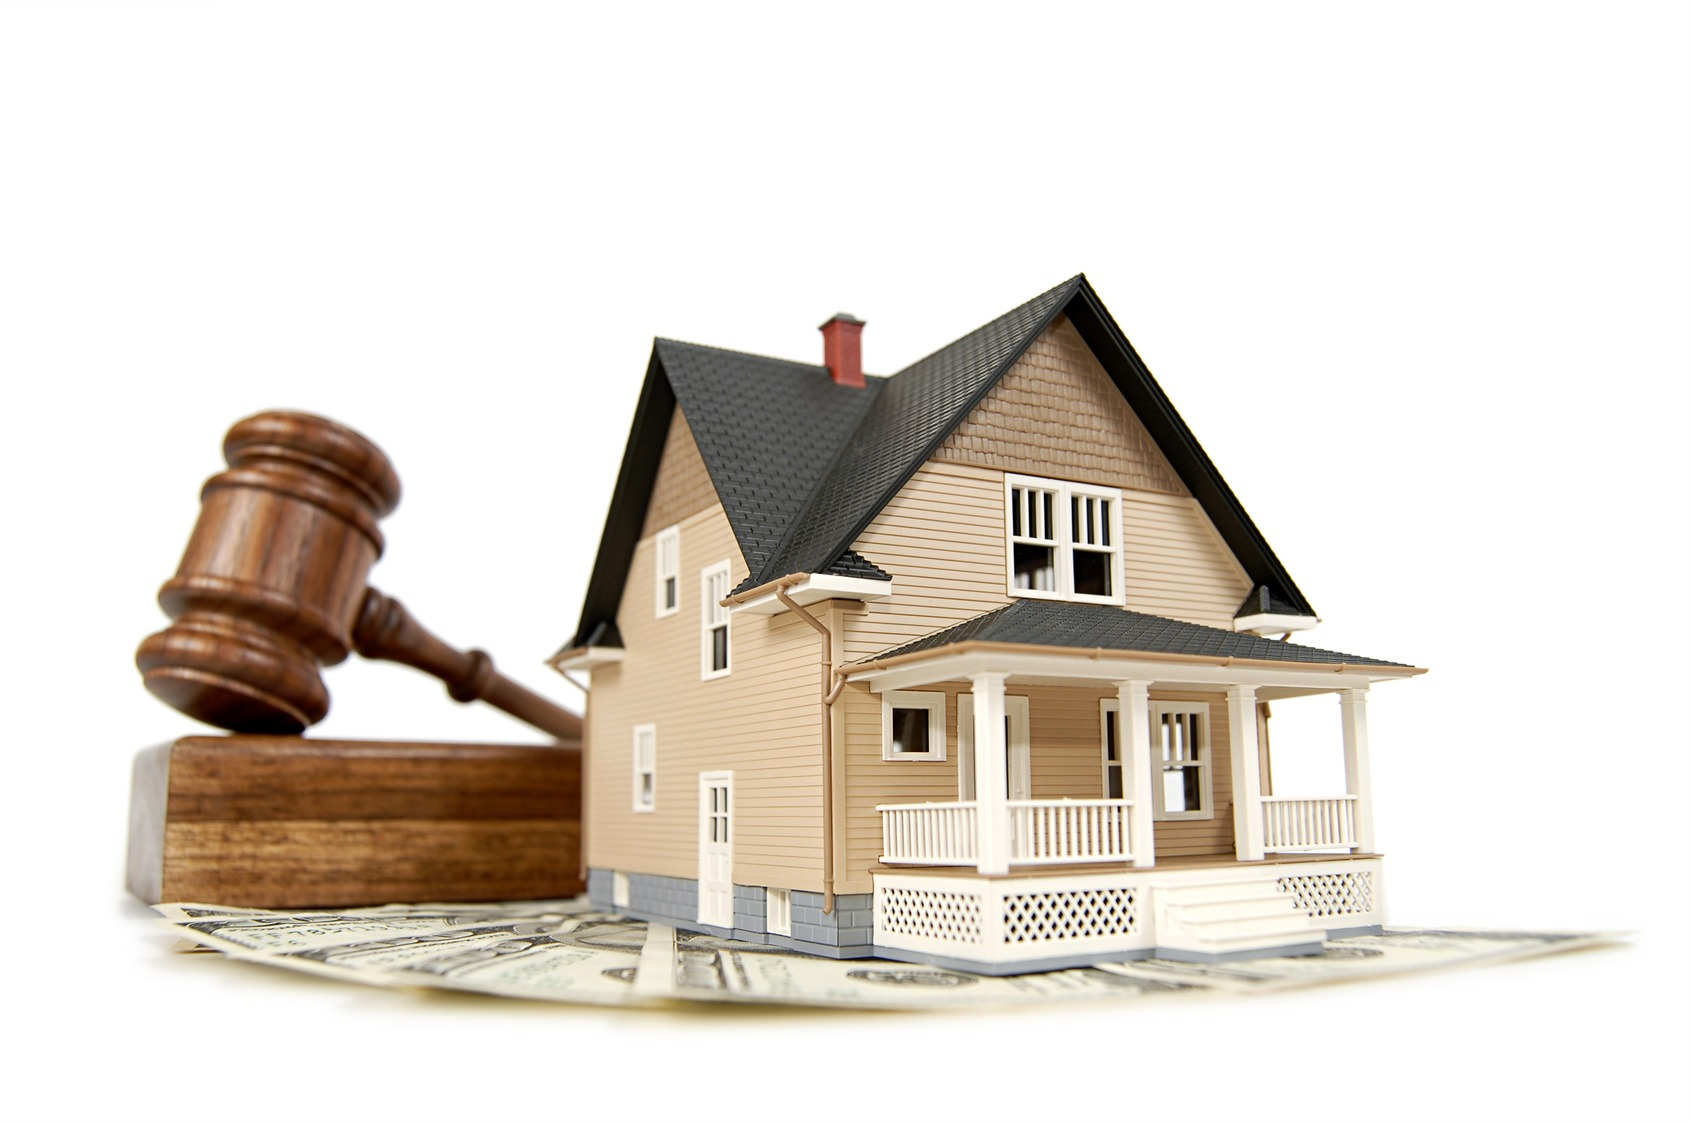 Laws in construction and real estate in Ethiopia